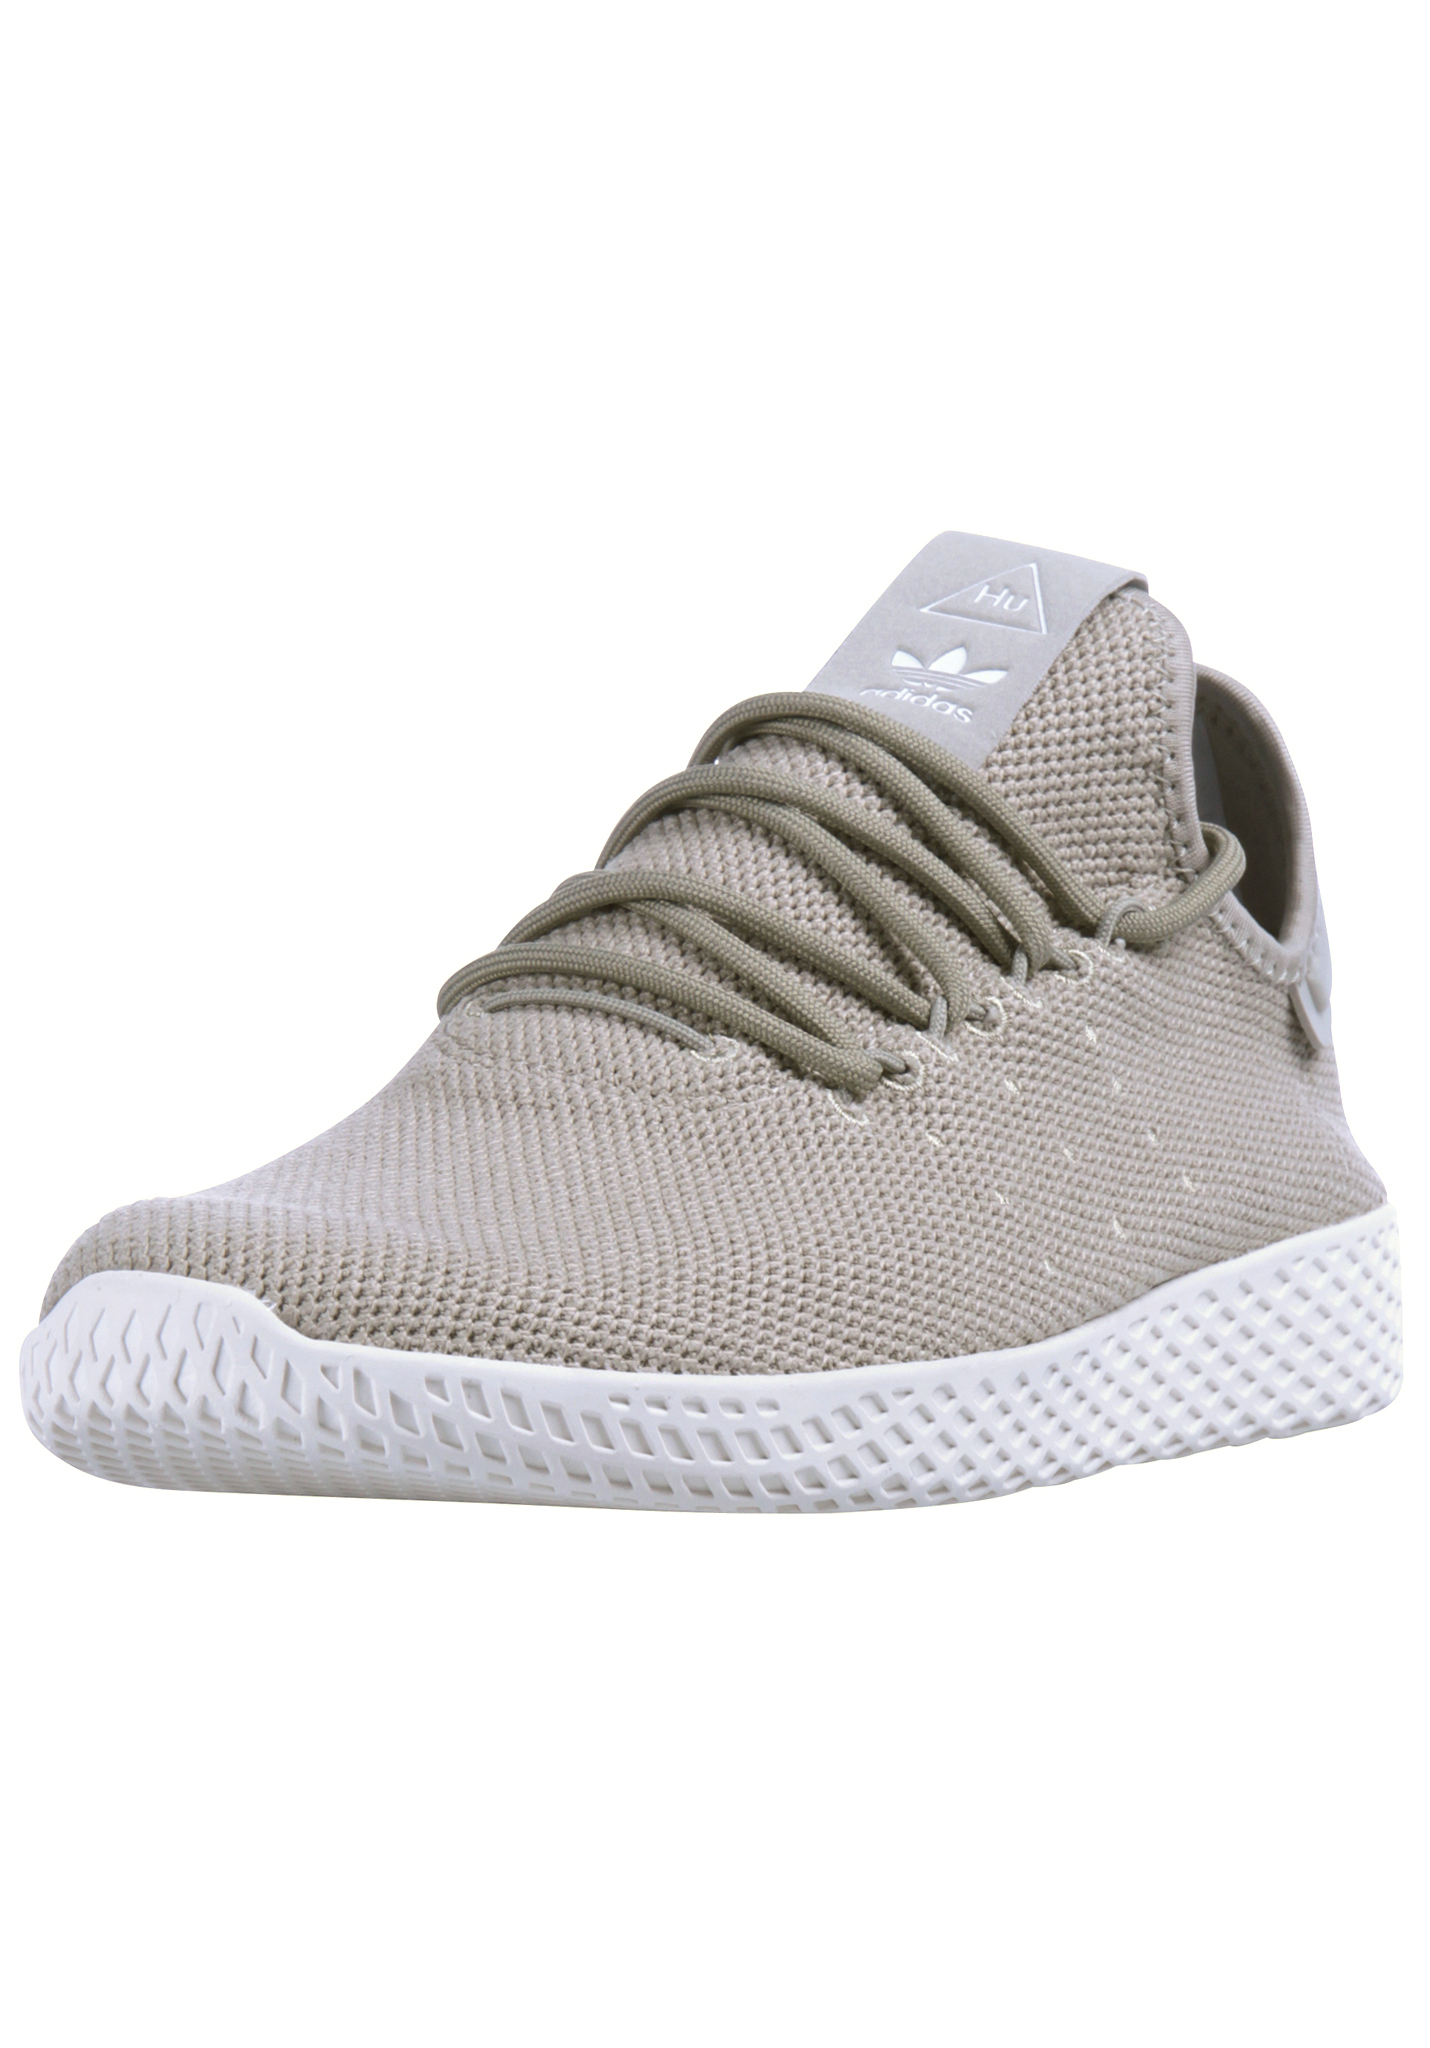 Details zu adidas Pharrell Williams Tennis Hu Herren Damen Sneaker  Turnschuhe Freizeit